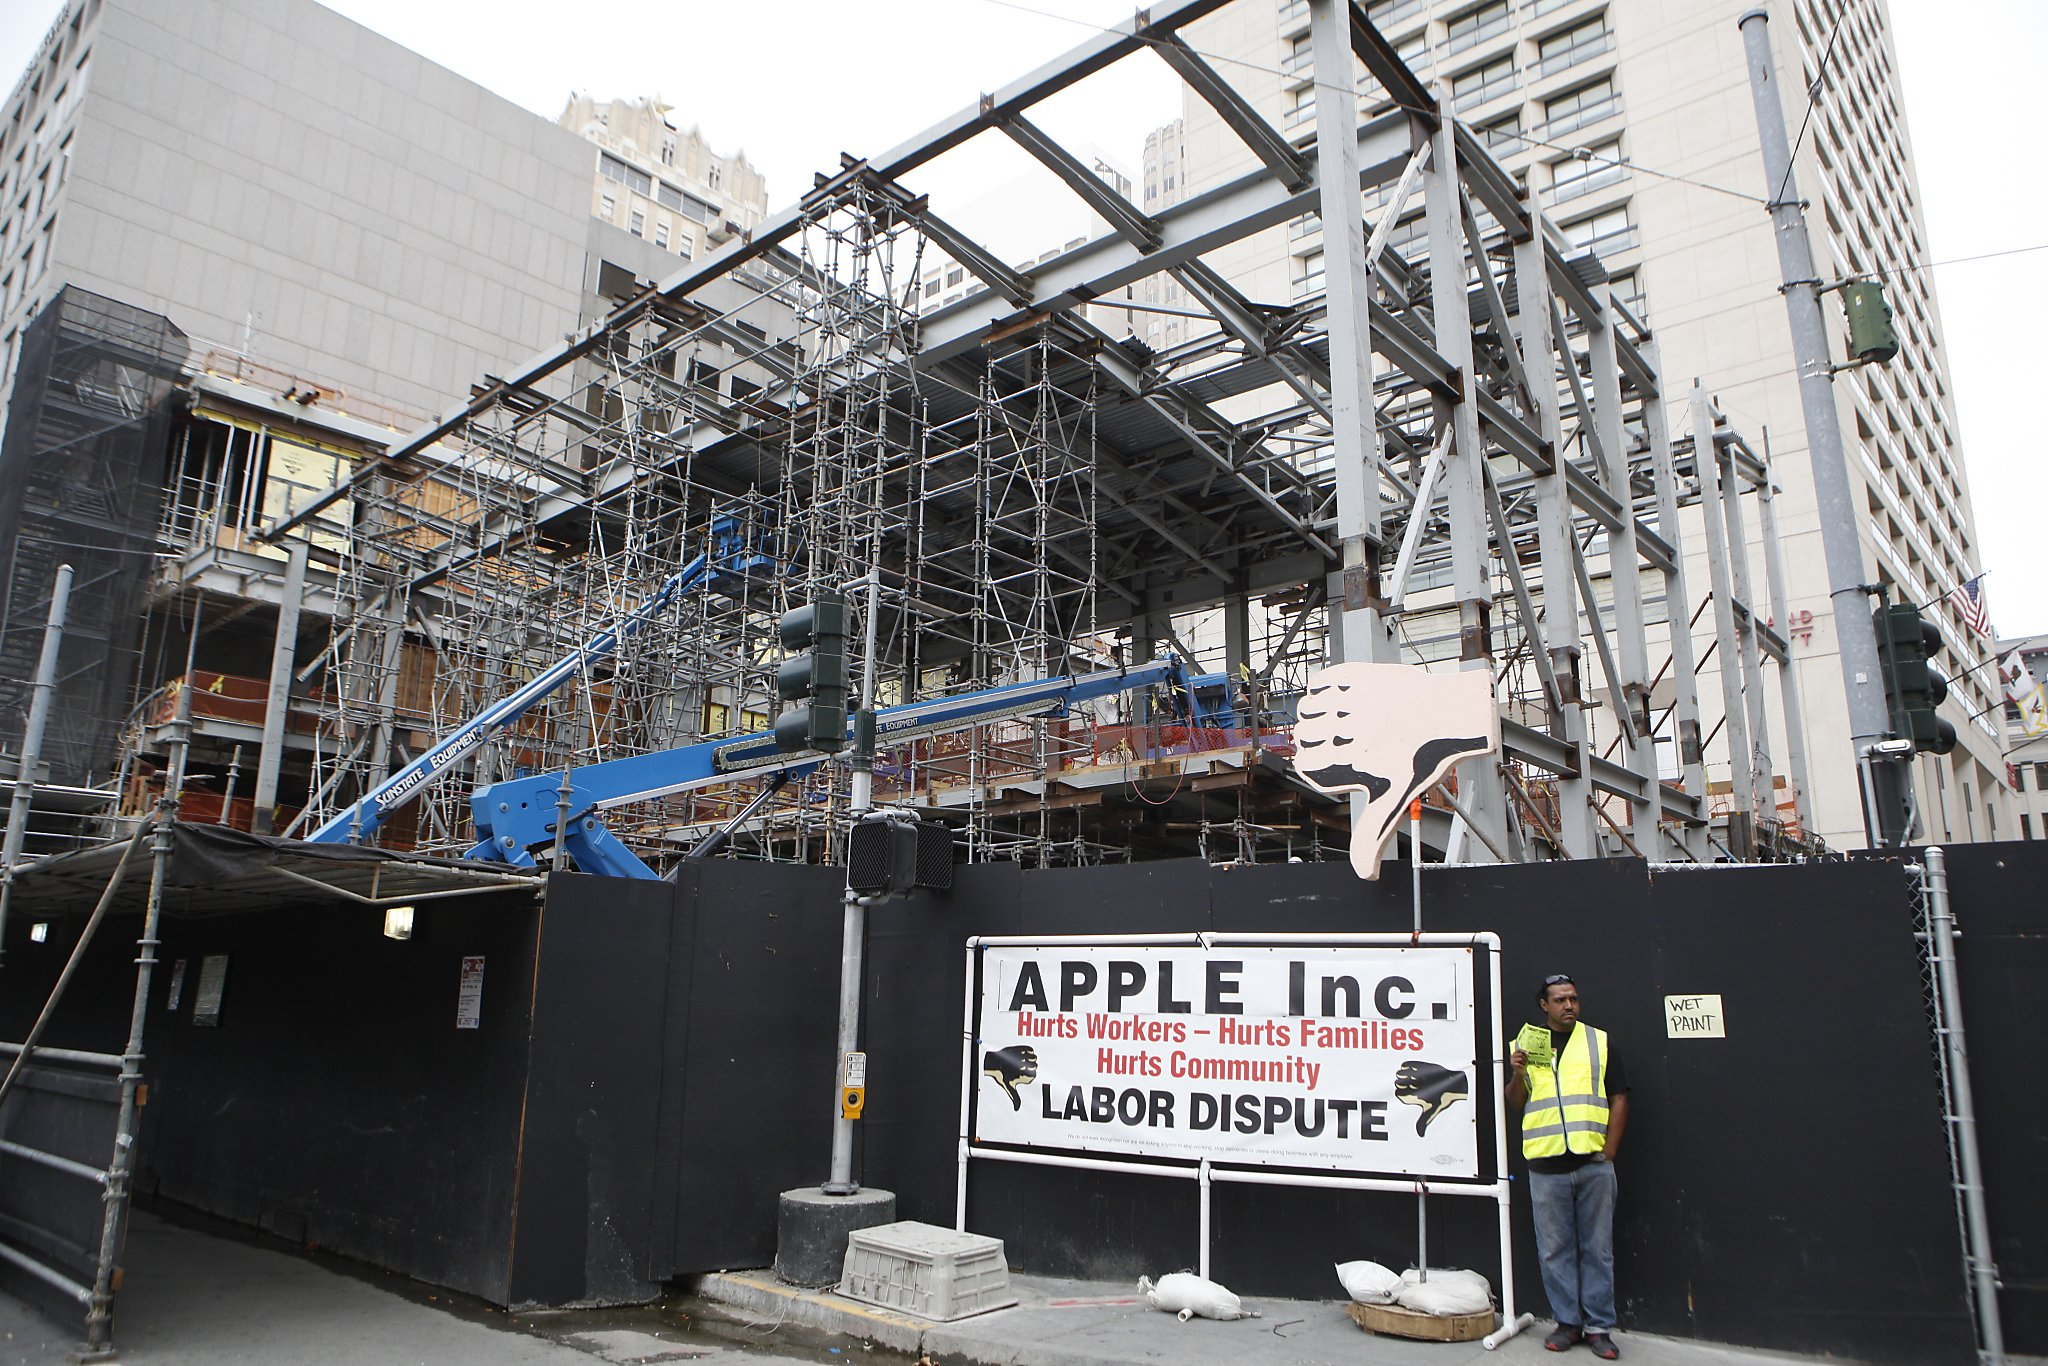 Practices At New Apple Building Draw Ire Of Union